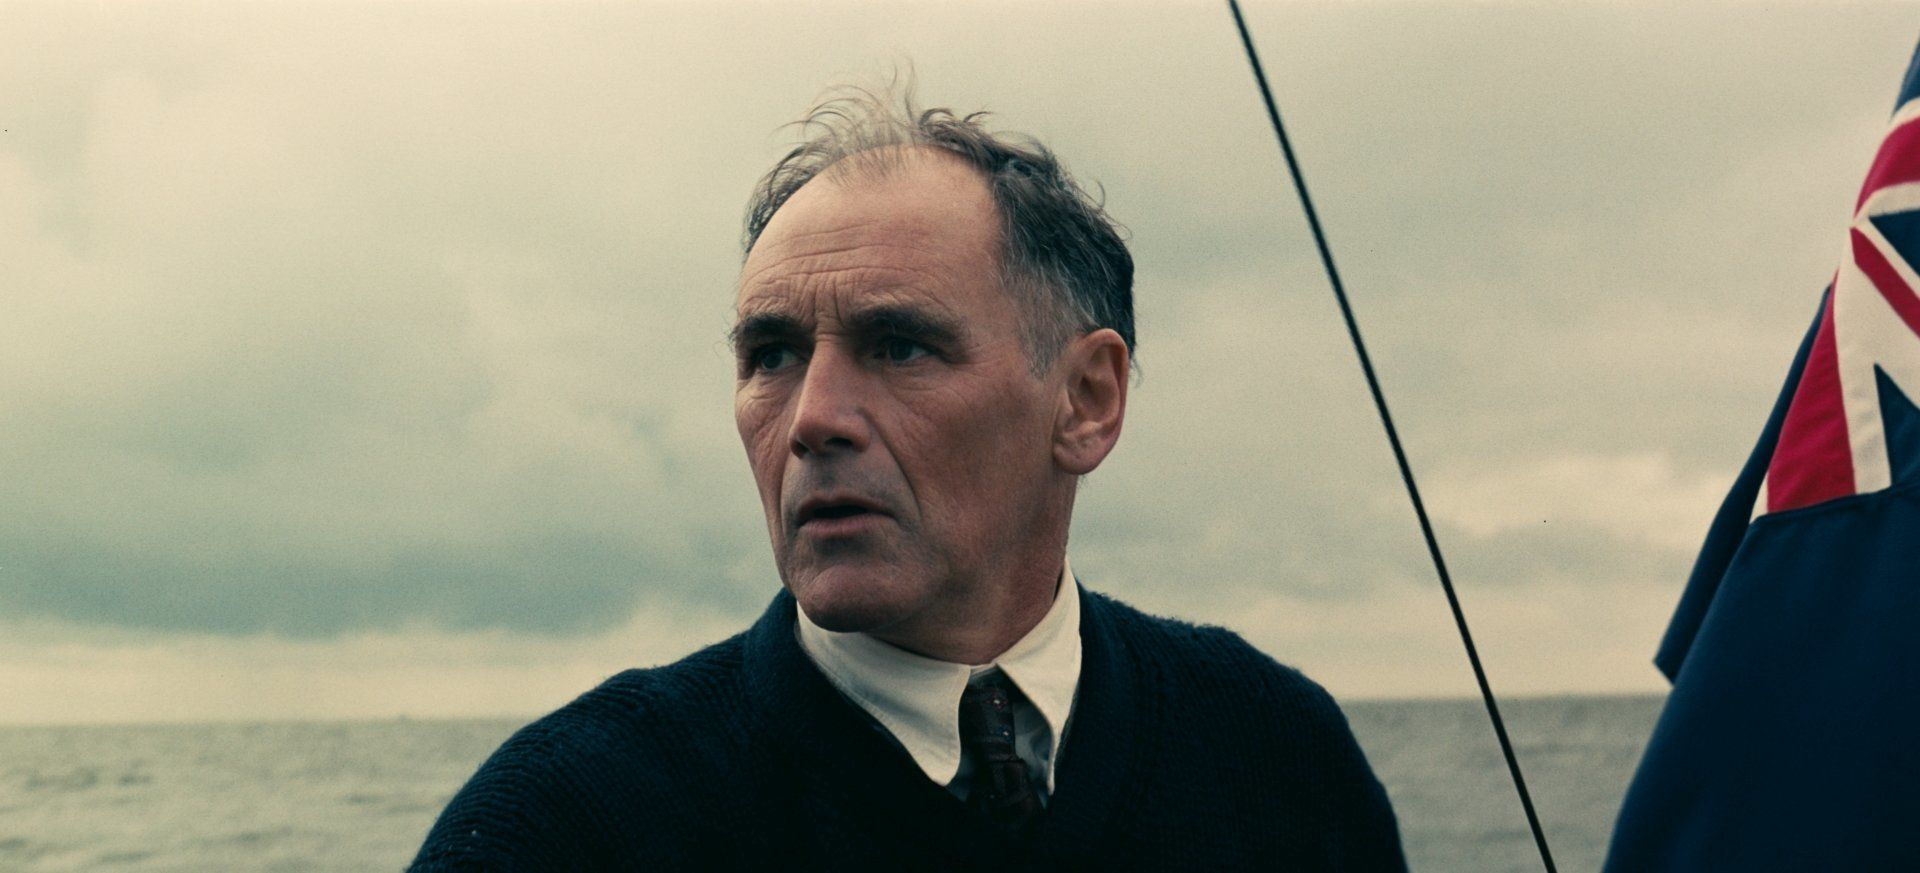 Sir Mark Rylance Highlights The Poignant Lesson Cinema-Goers Can Learn From